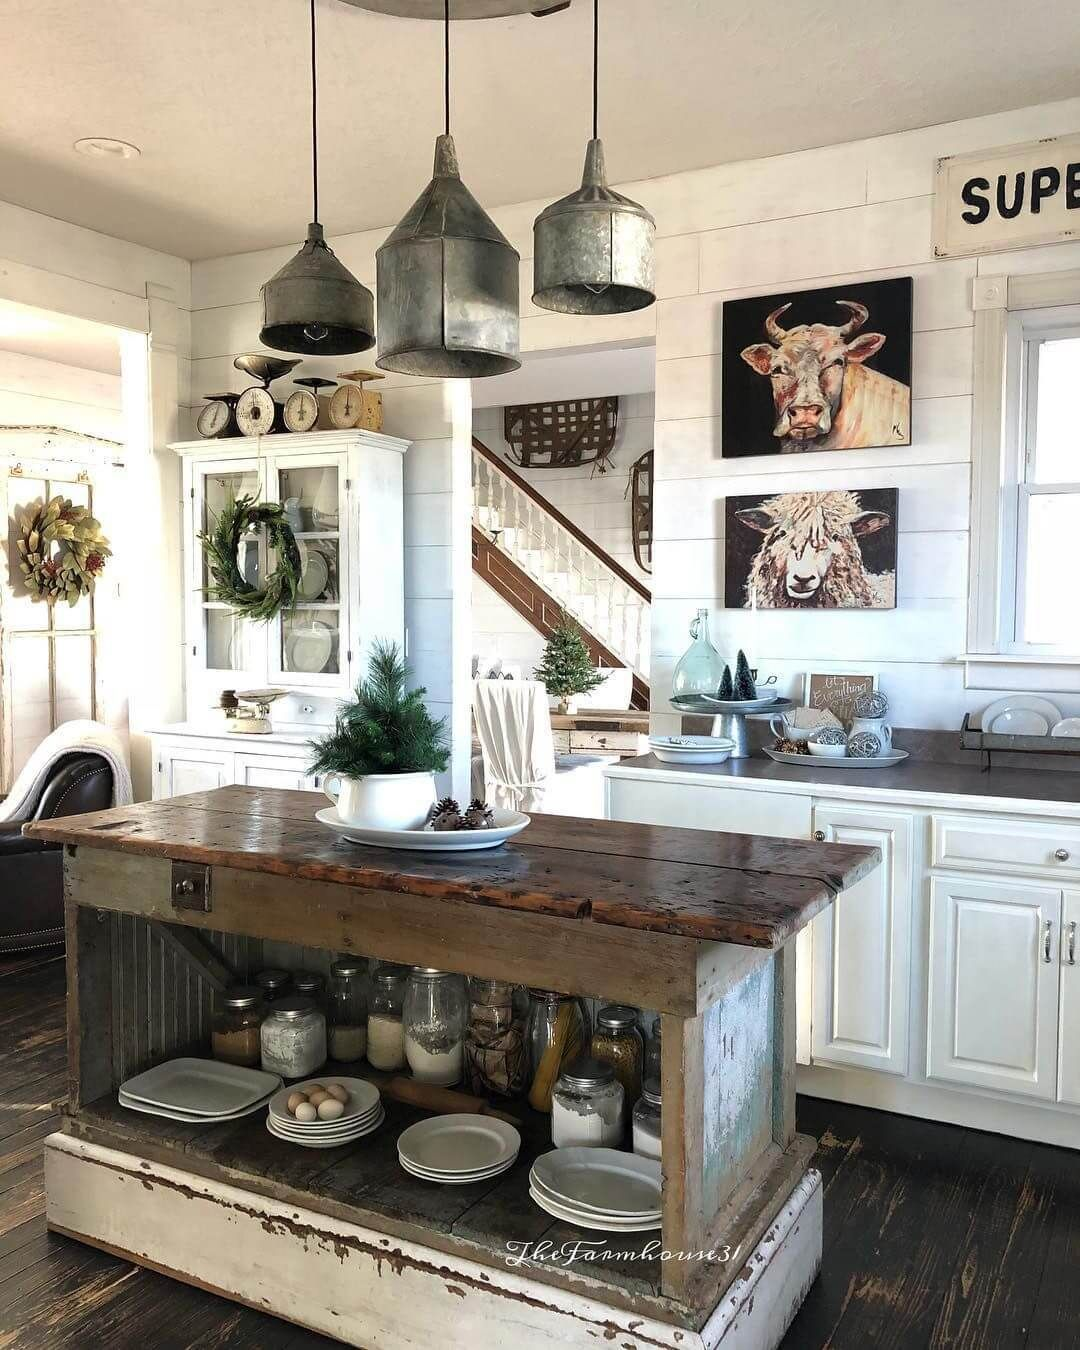 pendant lights with hammered metal shade early tag sale rh pinterest co uk